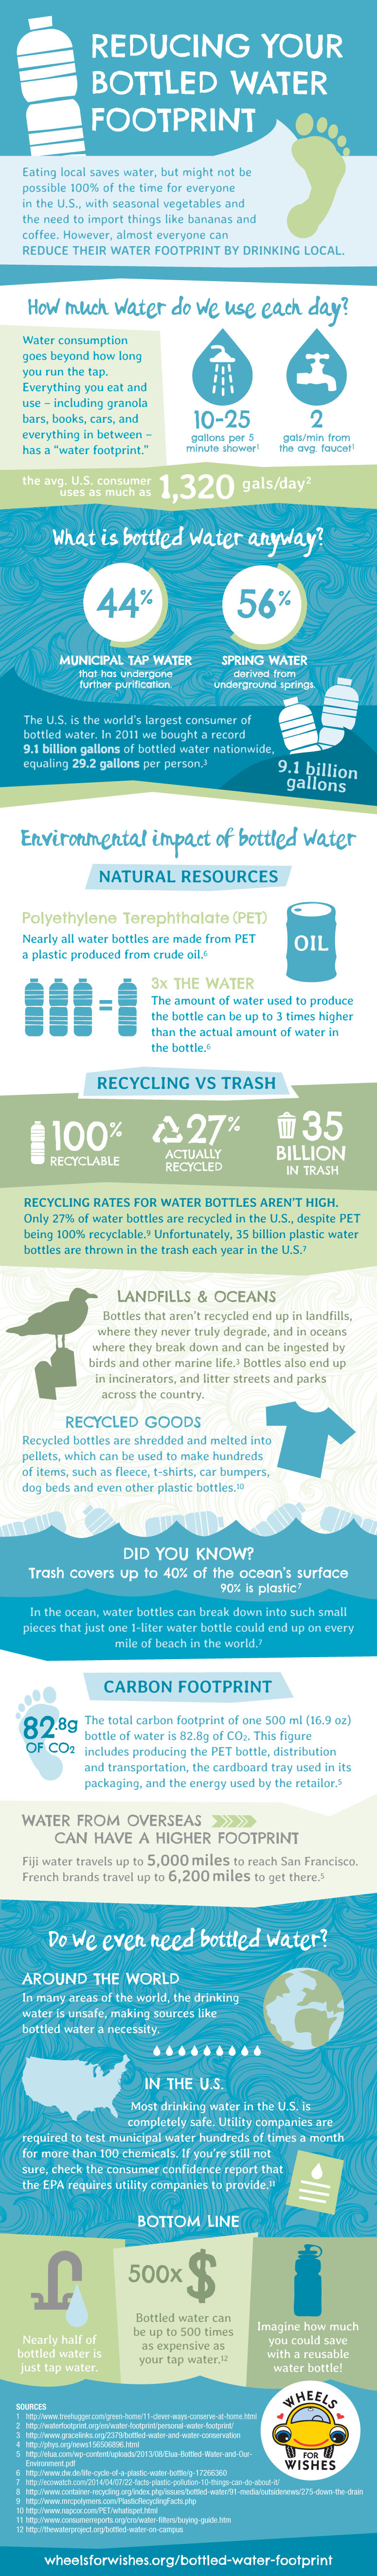 reduce-your-water-footprint-infographic